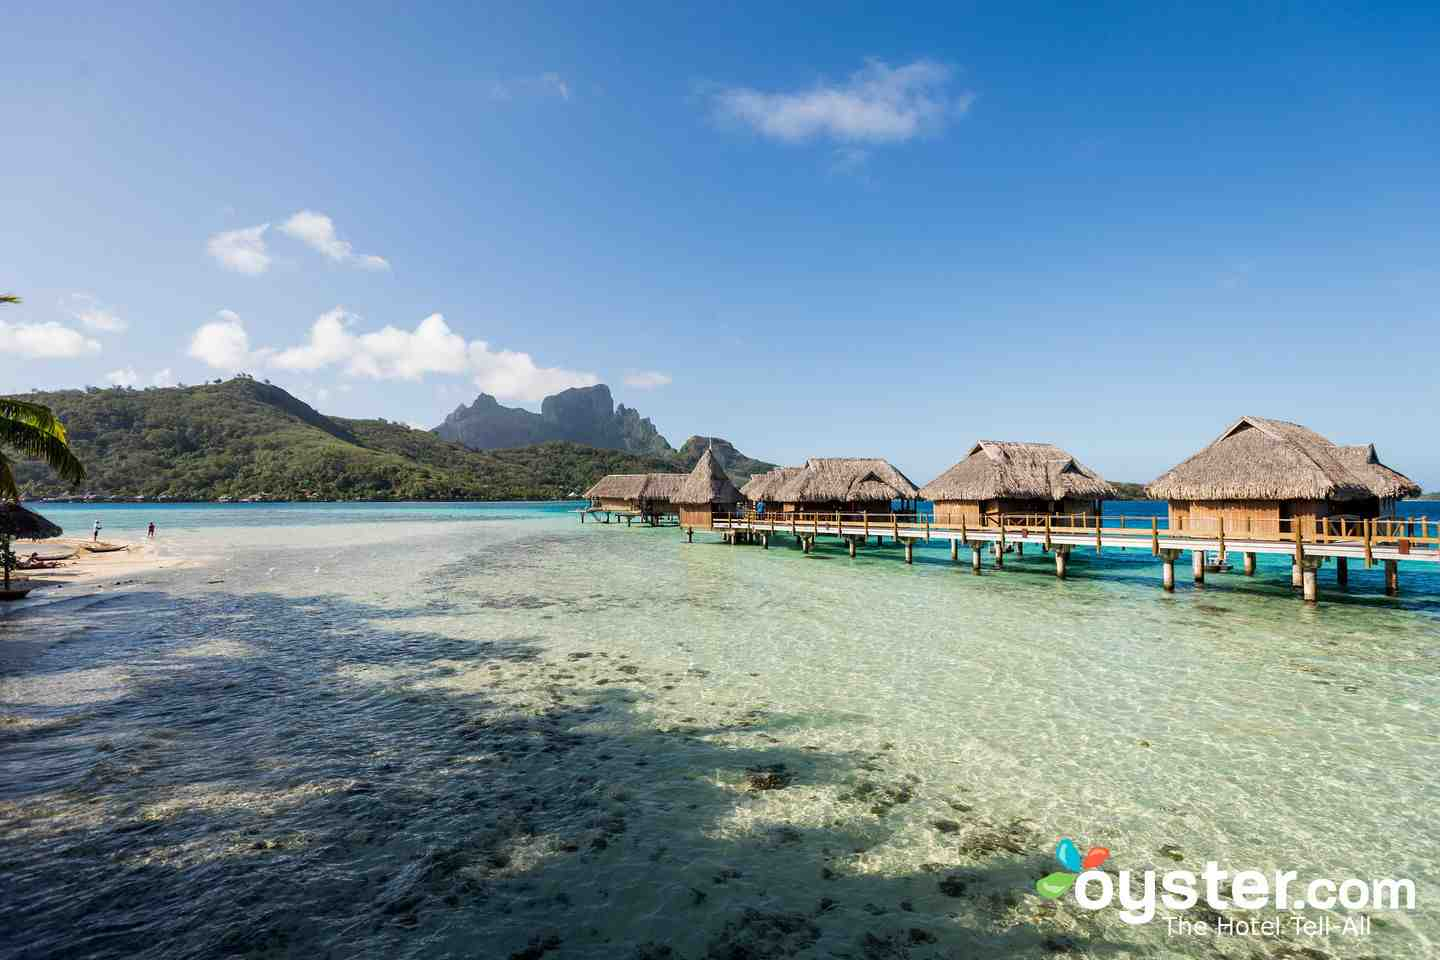 How much is an average trip to Bora Bora?